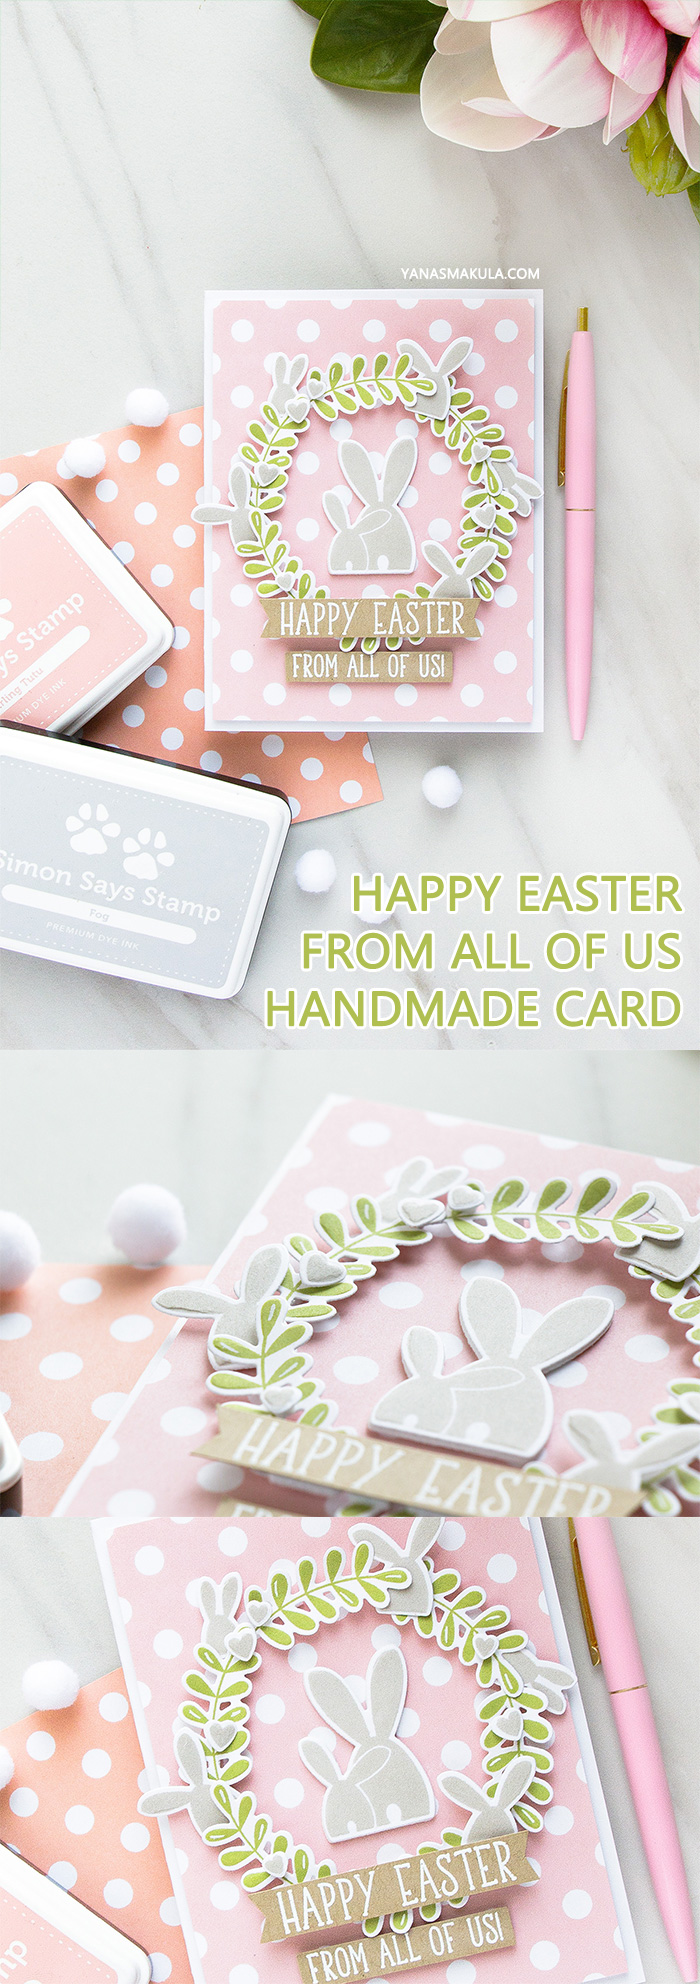 Simon Says Stamp | Happy Easter - Bunny Wreath Card by Yana Smakula using OH BUNNY sss101812, REVERSE POLKA Background sss101813 stamps #simonsaysstamp #simonsaysbestdays #stamping #eastercard #bunnycard